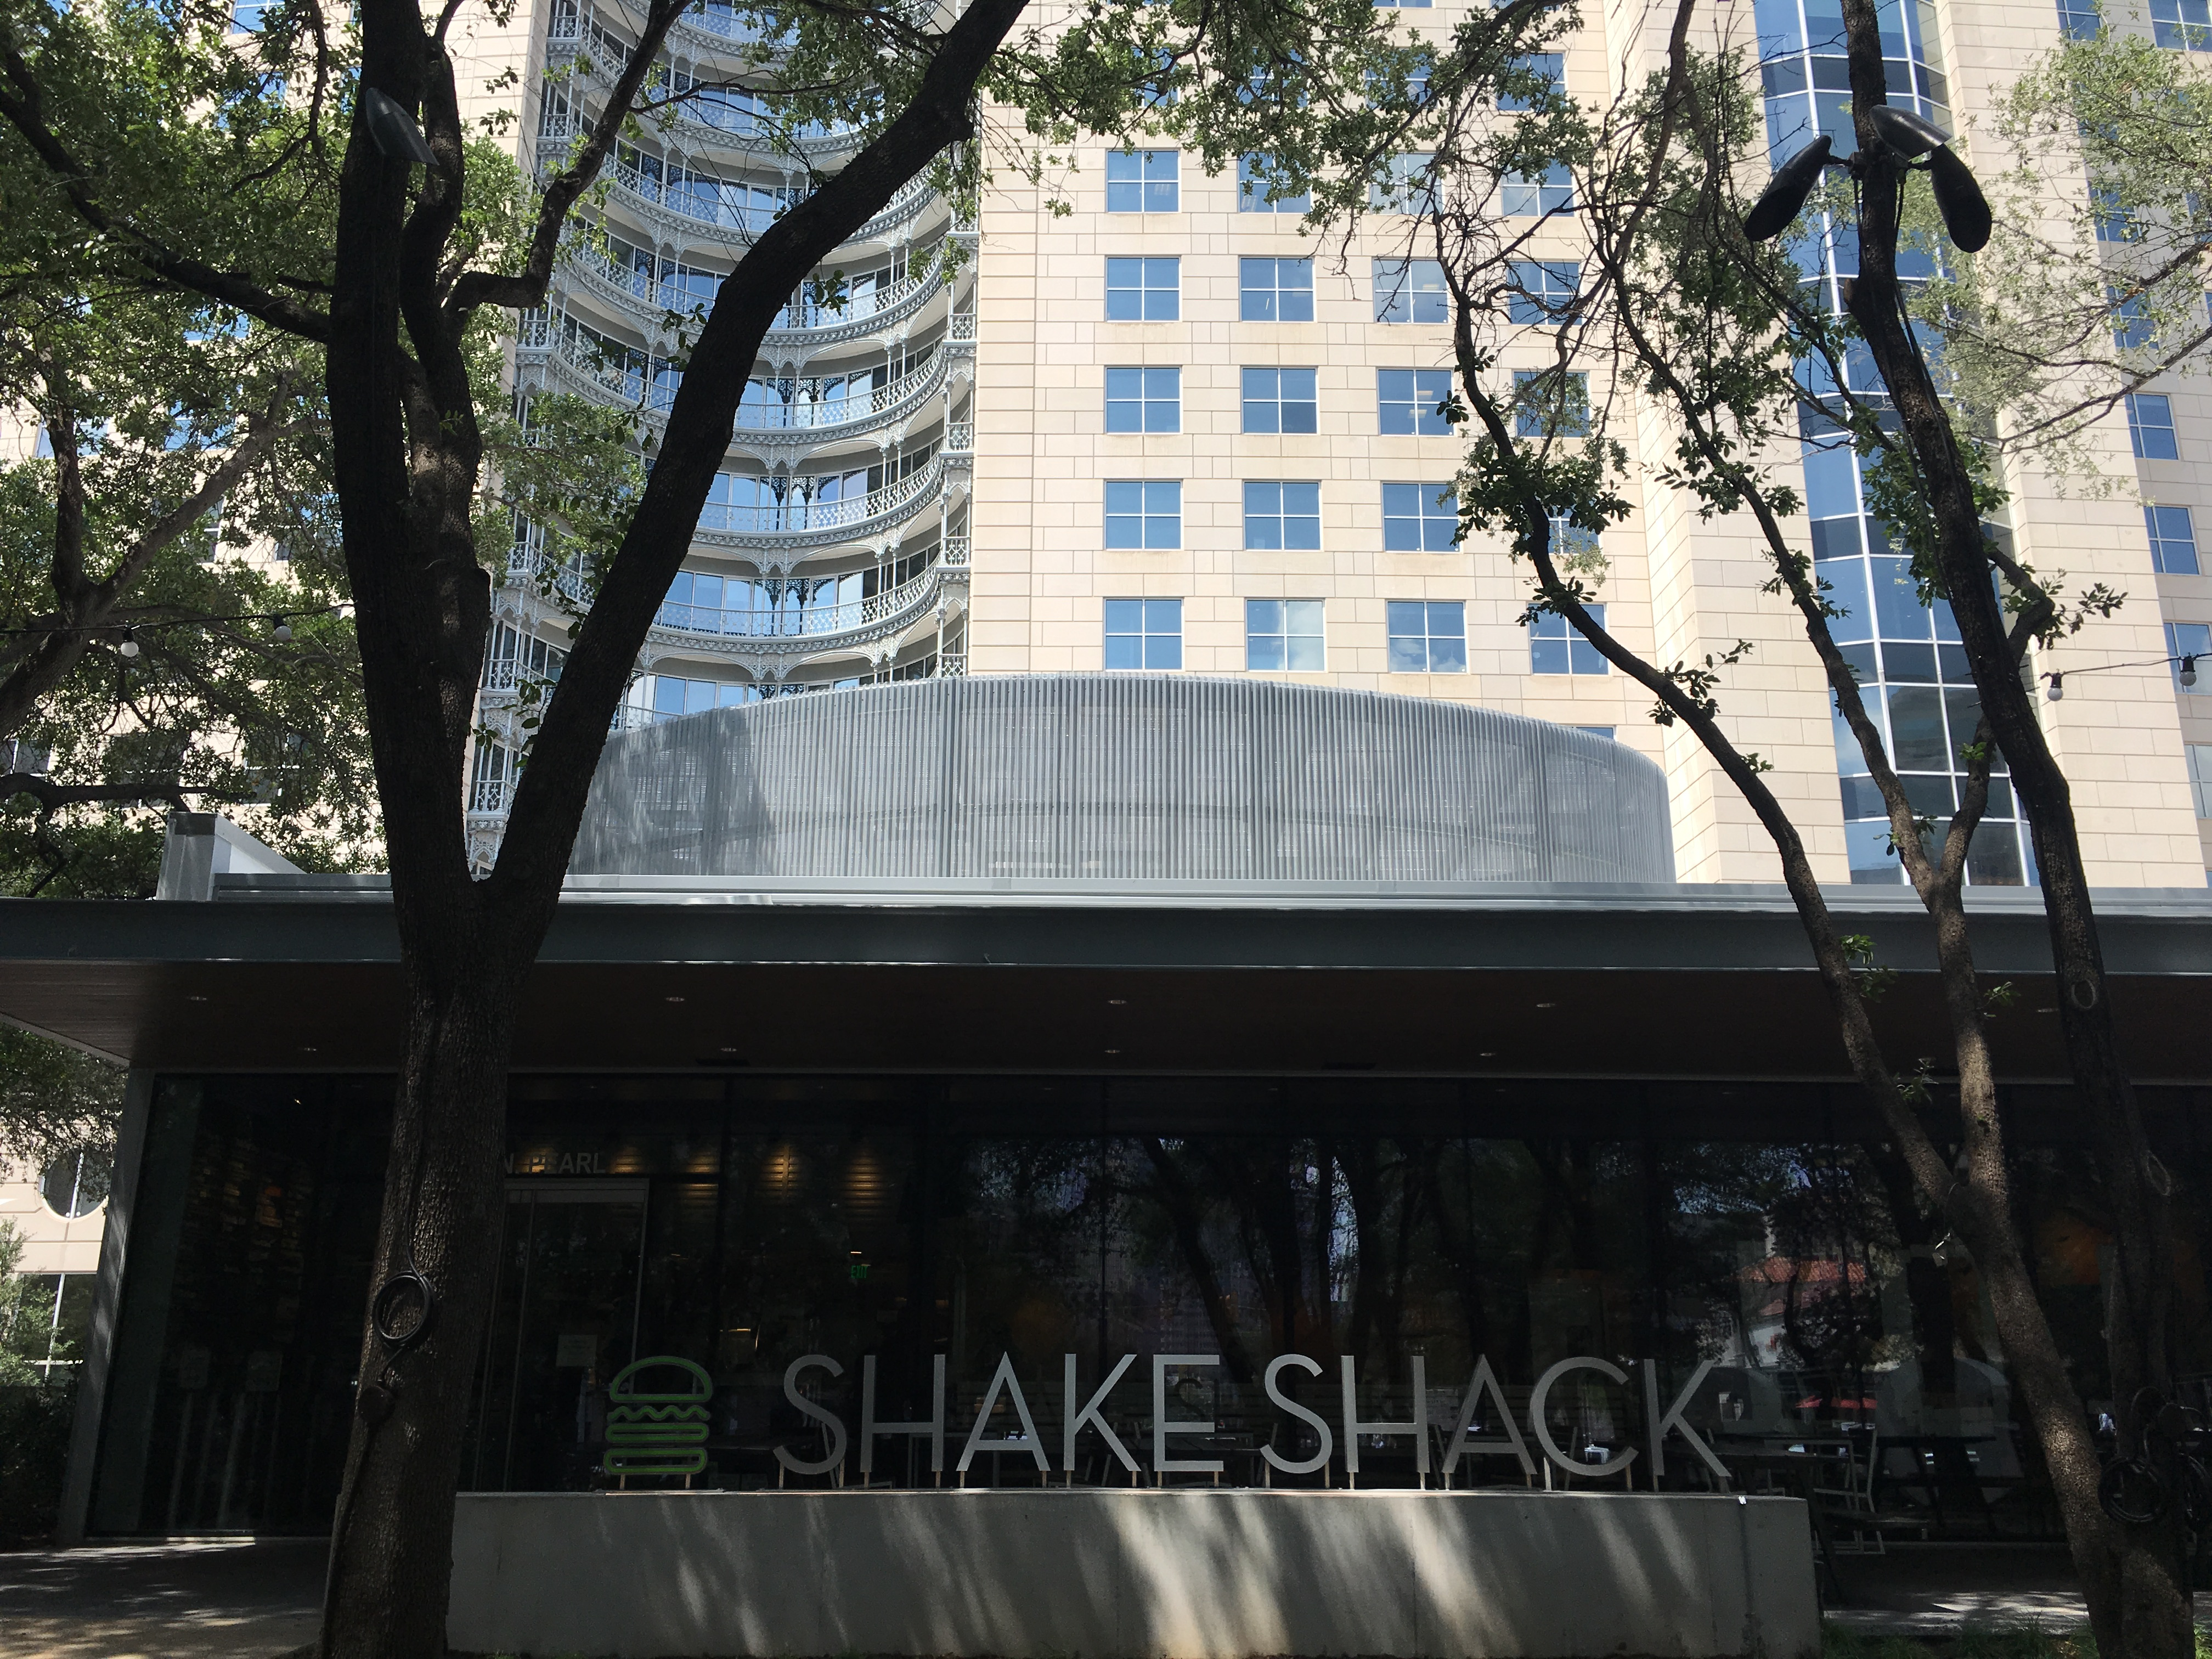 Shake Shack's first Dallas location at the Crescent